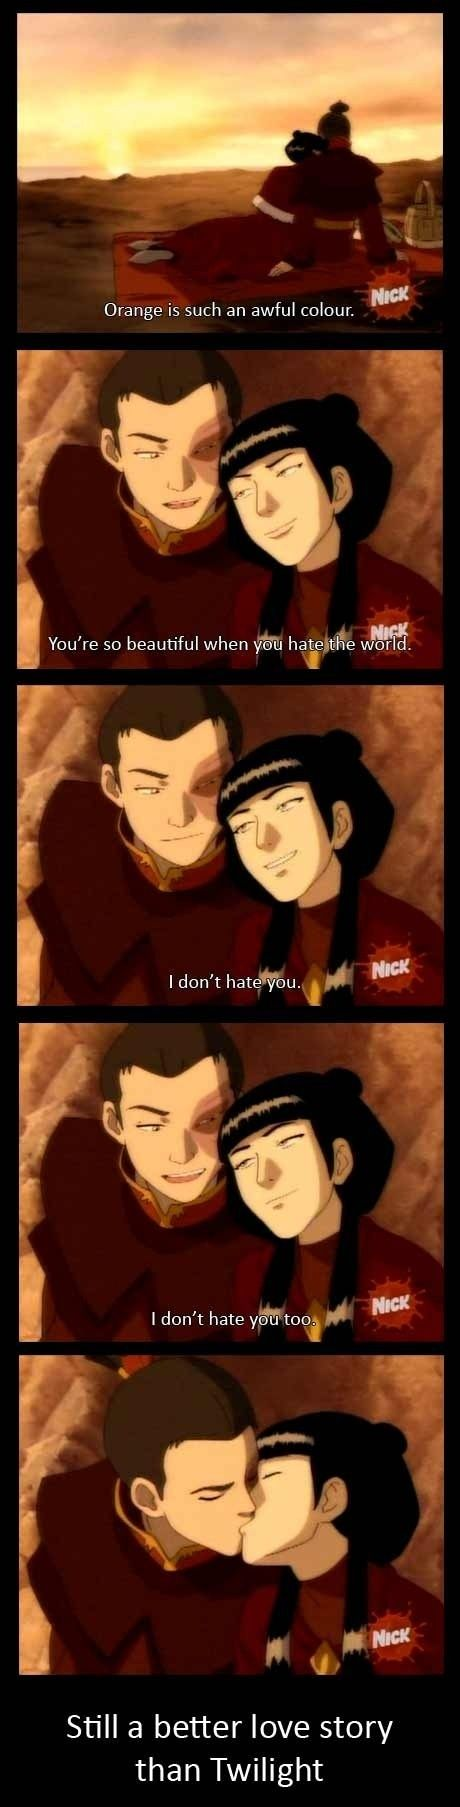 Ummm... Ummmm.... UM! EMMA! THIS IS KINDA A BIG DEAL! Puts kinda a hole in the Clara/Mai Zuko thing!